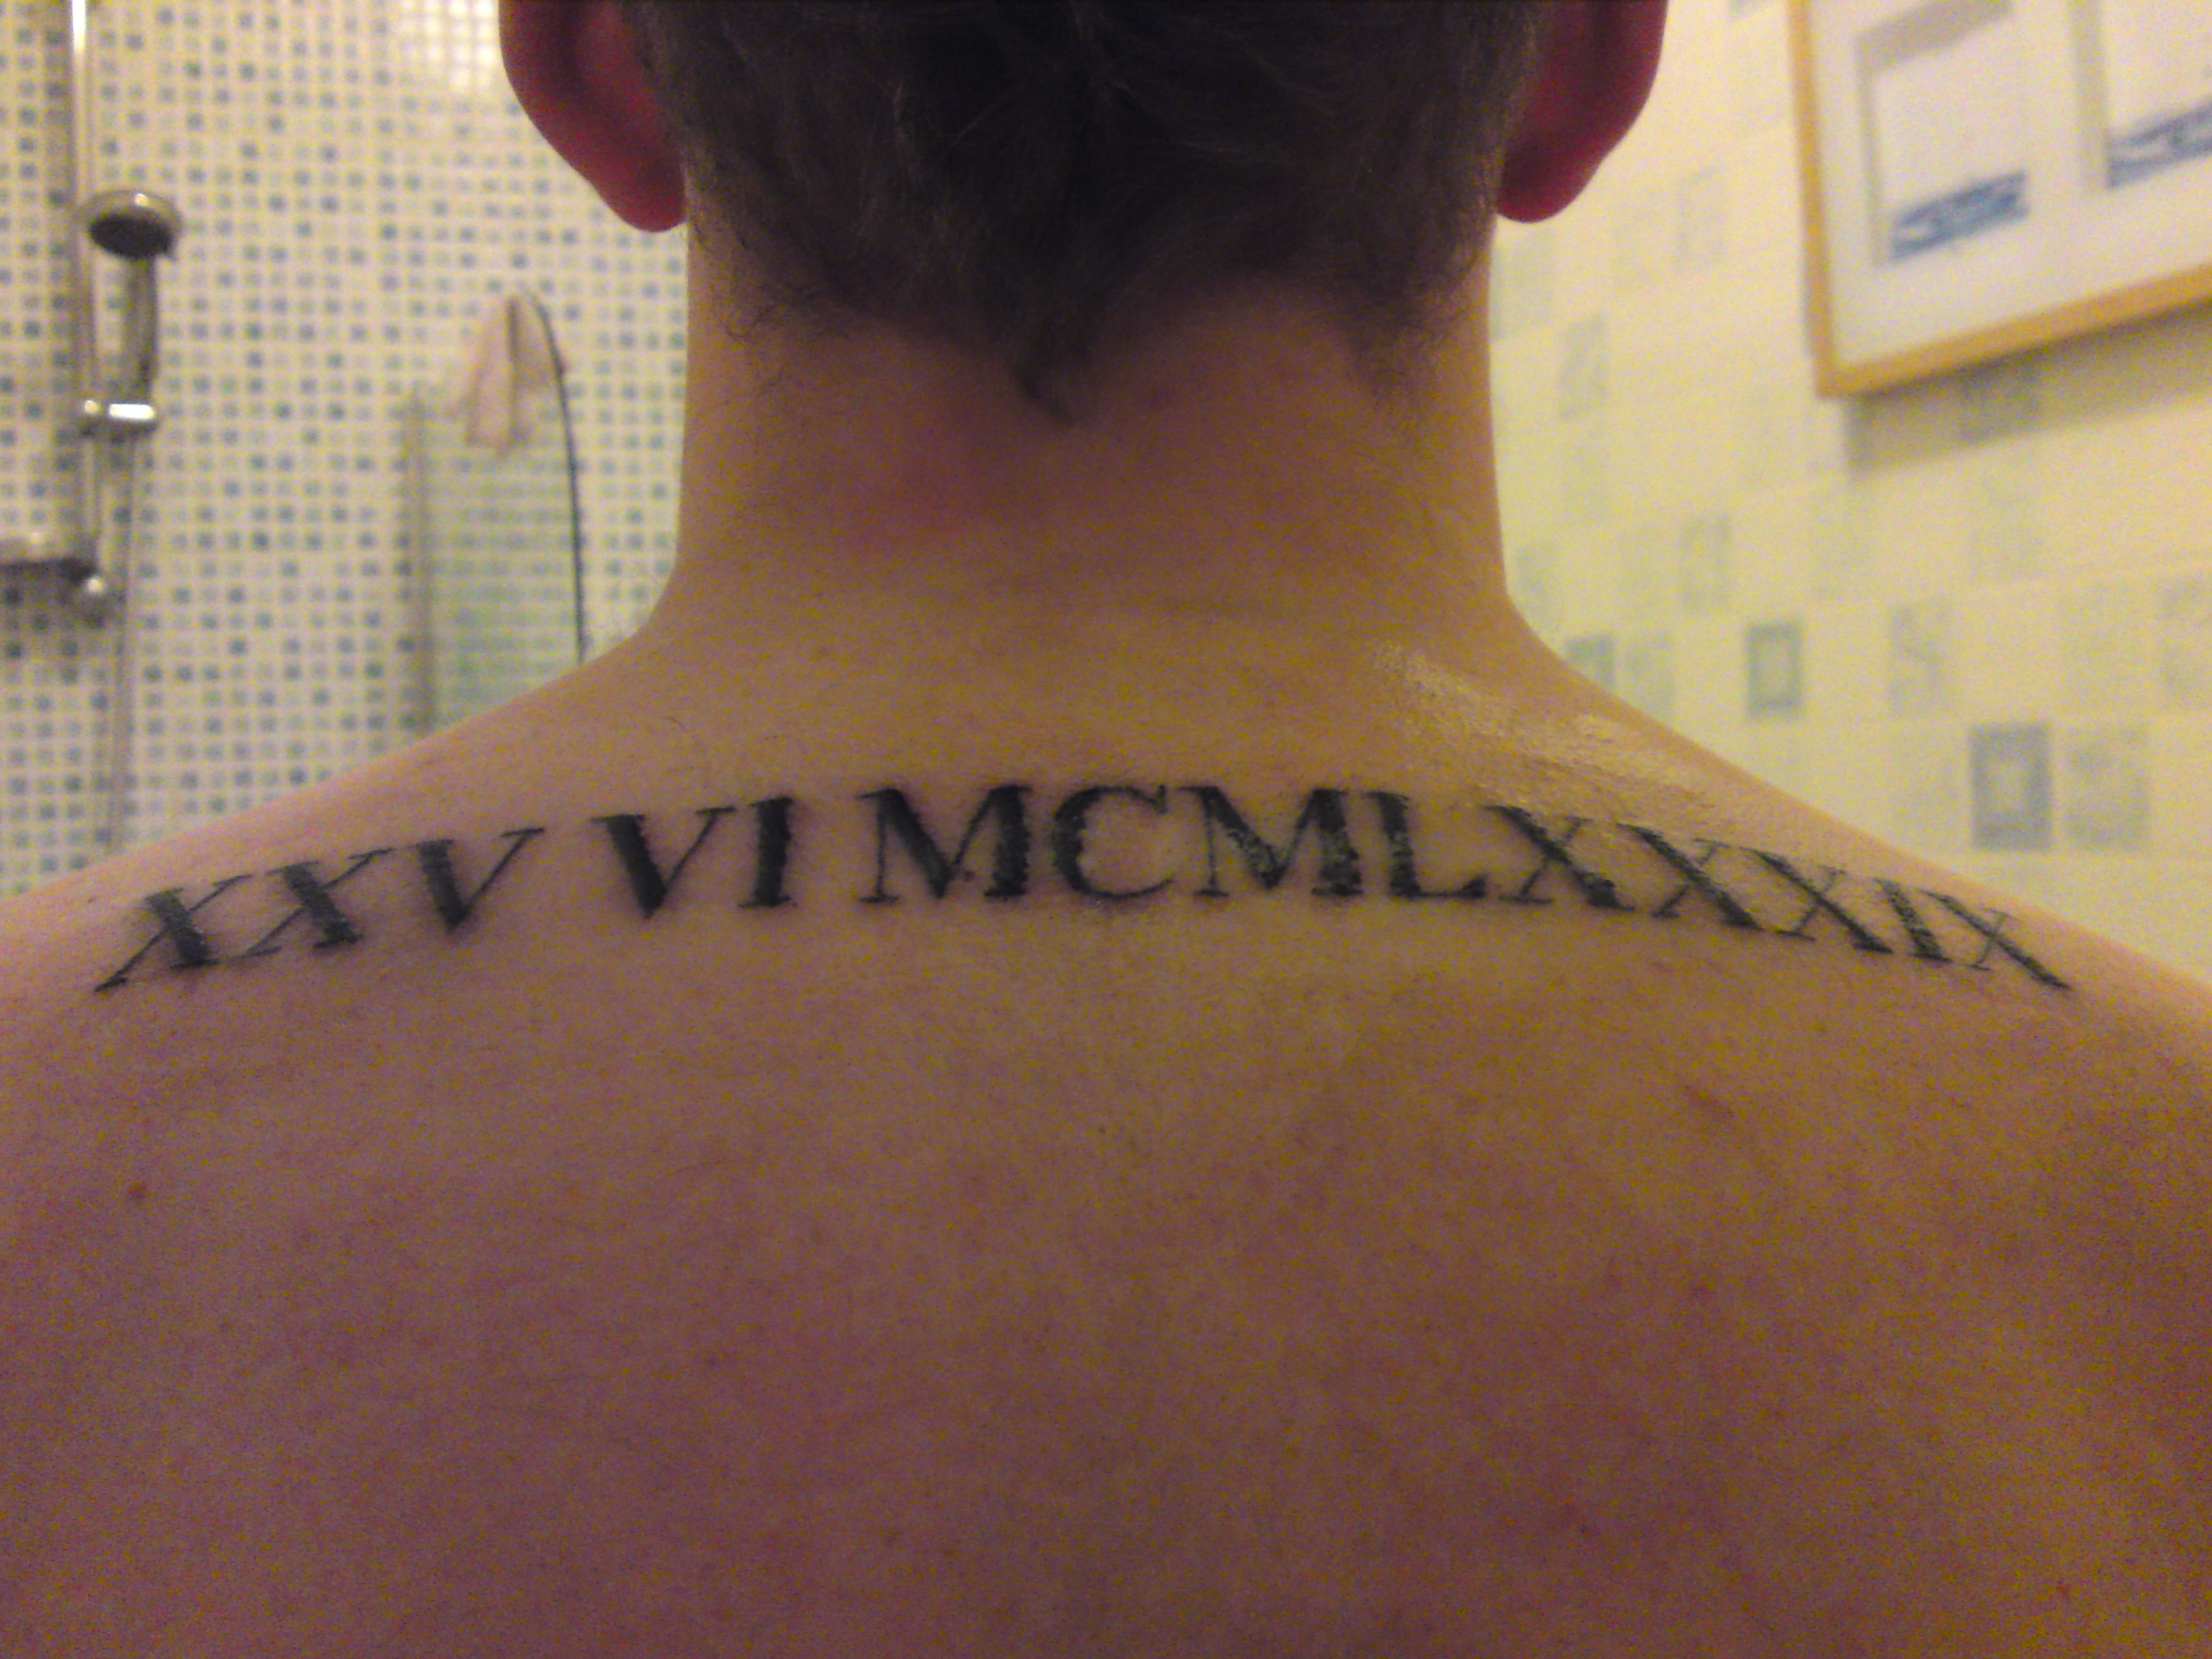 Roman Numeral Tattoos Designs, Ideas and Meaning | Tattoos ...